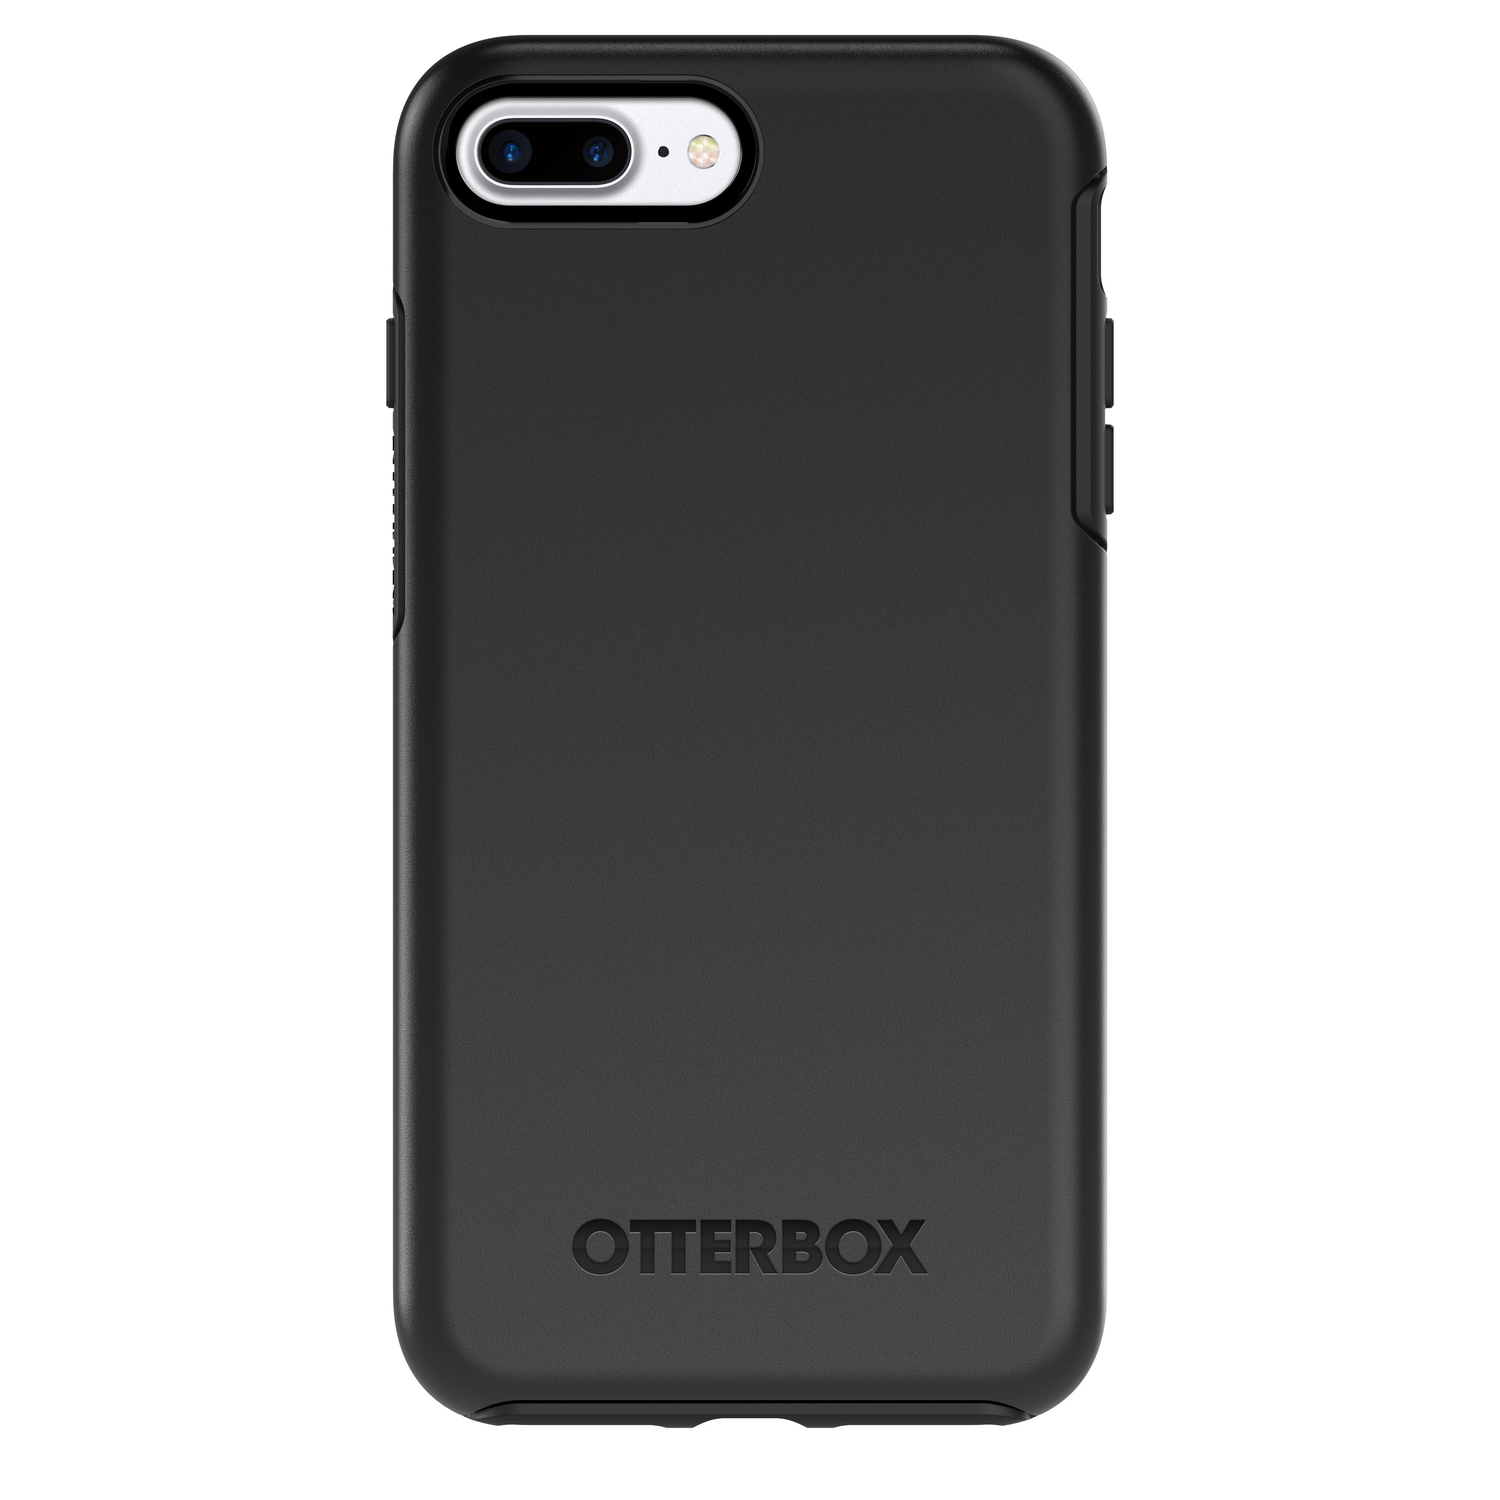 Otter Box  Symmetry  Black  Cell Phone Case  For Apple iPhone 7 Plus